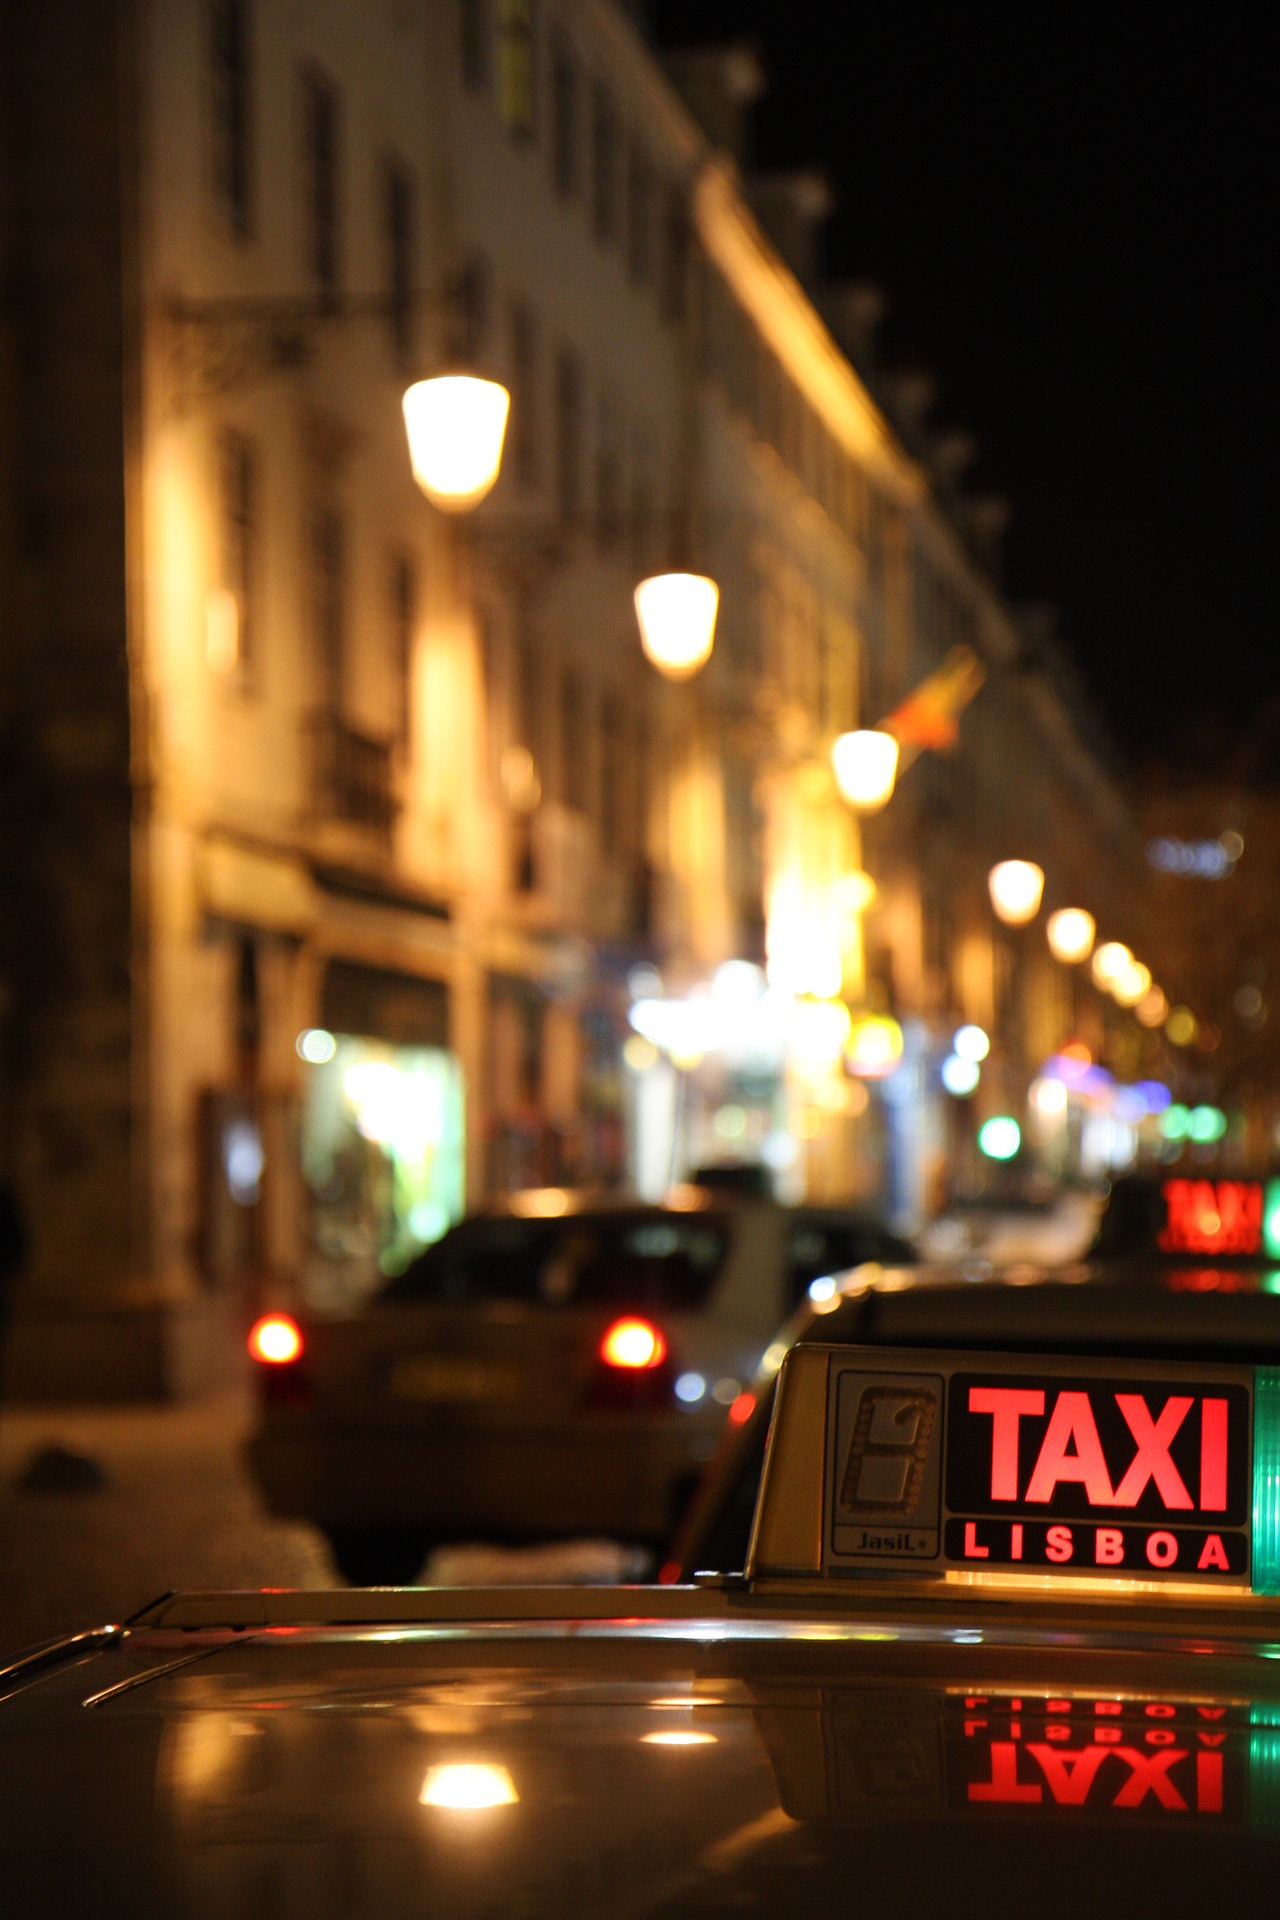 https://pixabay.com/en/taxi-portugal-lisbon-downtown-road-950078/